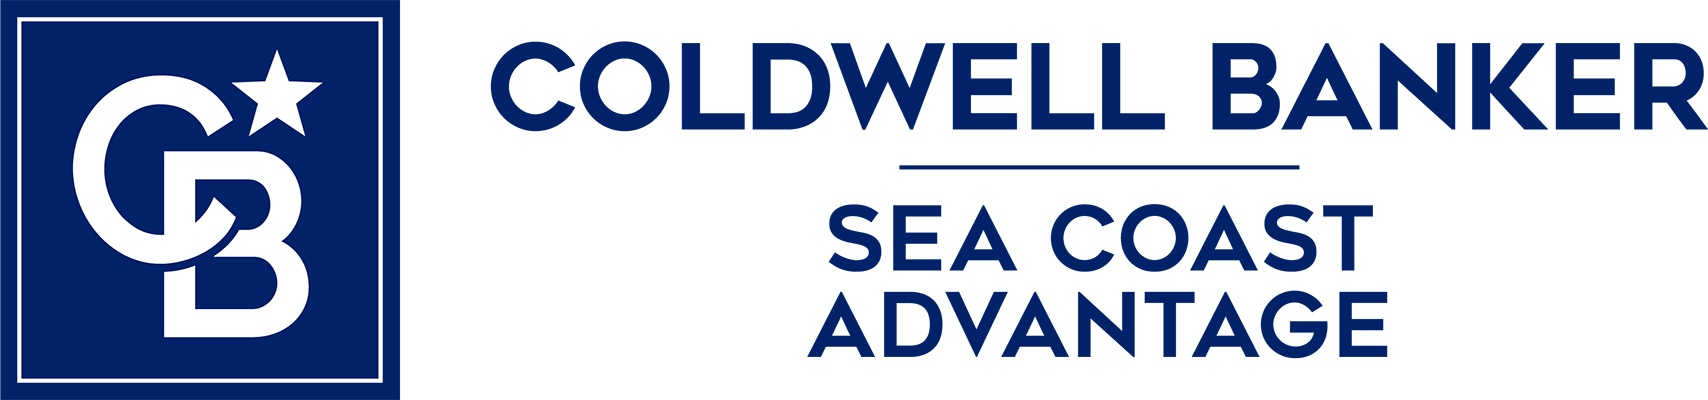 Matt Snyder - Coldwell Banker Sea Coast Advantage Realty